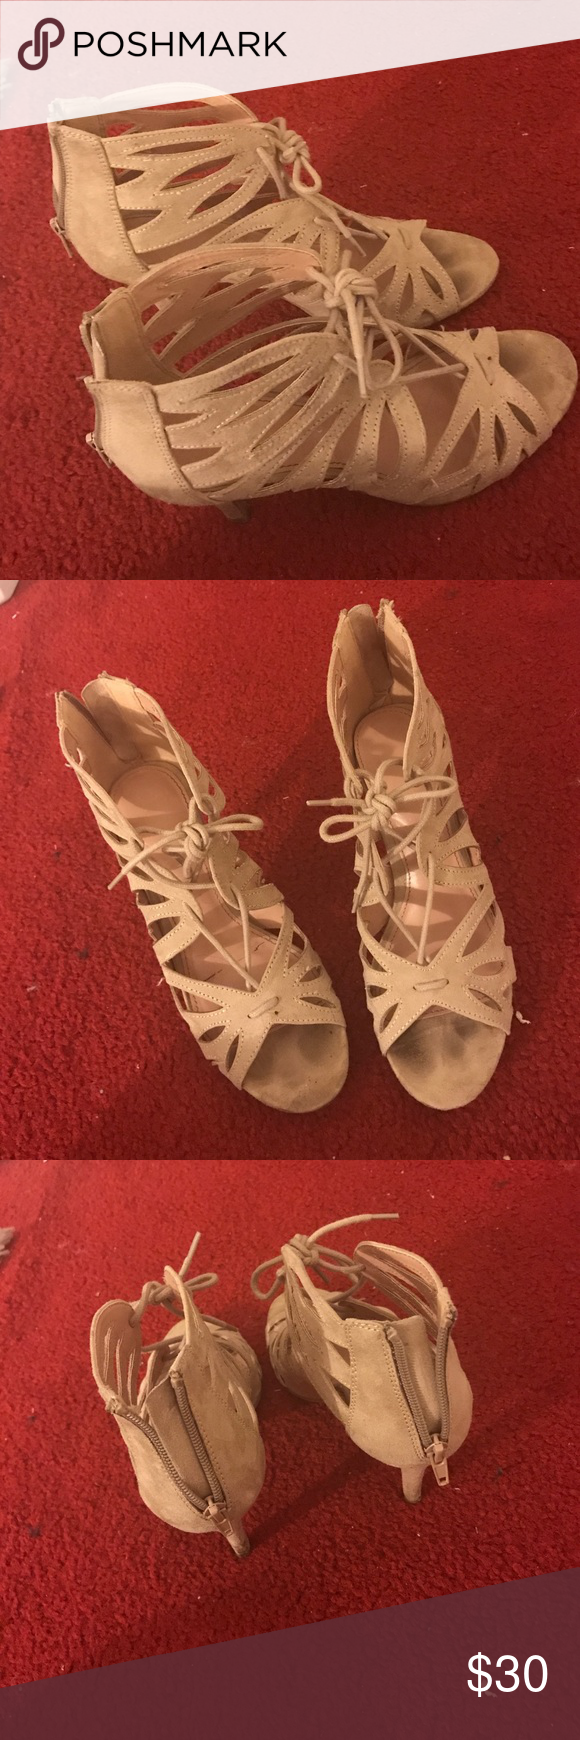 """Christian Siriano Beige Nude Lace-Up Sandals So cute for spring. Christian Siriano for Payless brand. Great condition. Lace up to tie in the front.  Heel heigh approx 3.5/4"""". Bundle & Save 💋💕 Christian Siriano Shoes Sandals"""